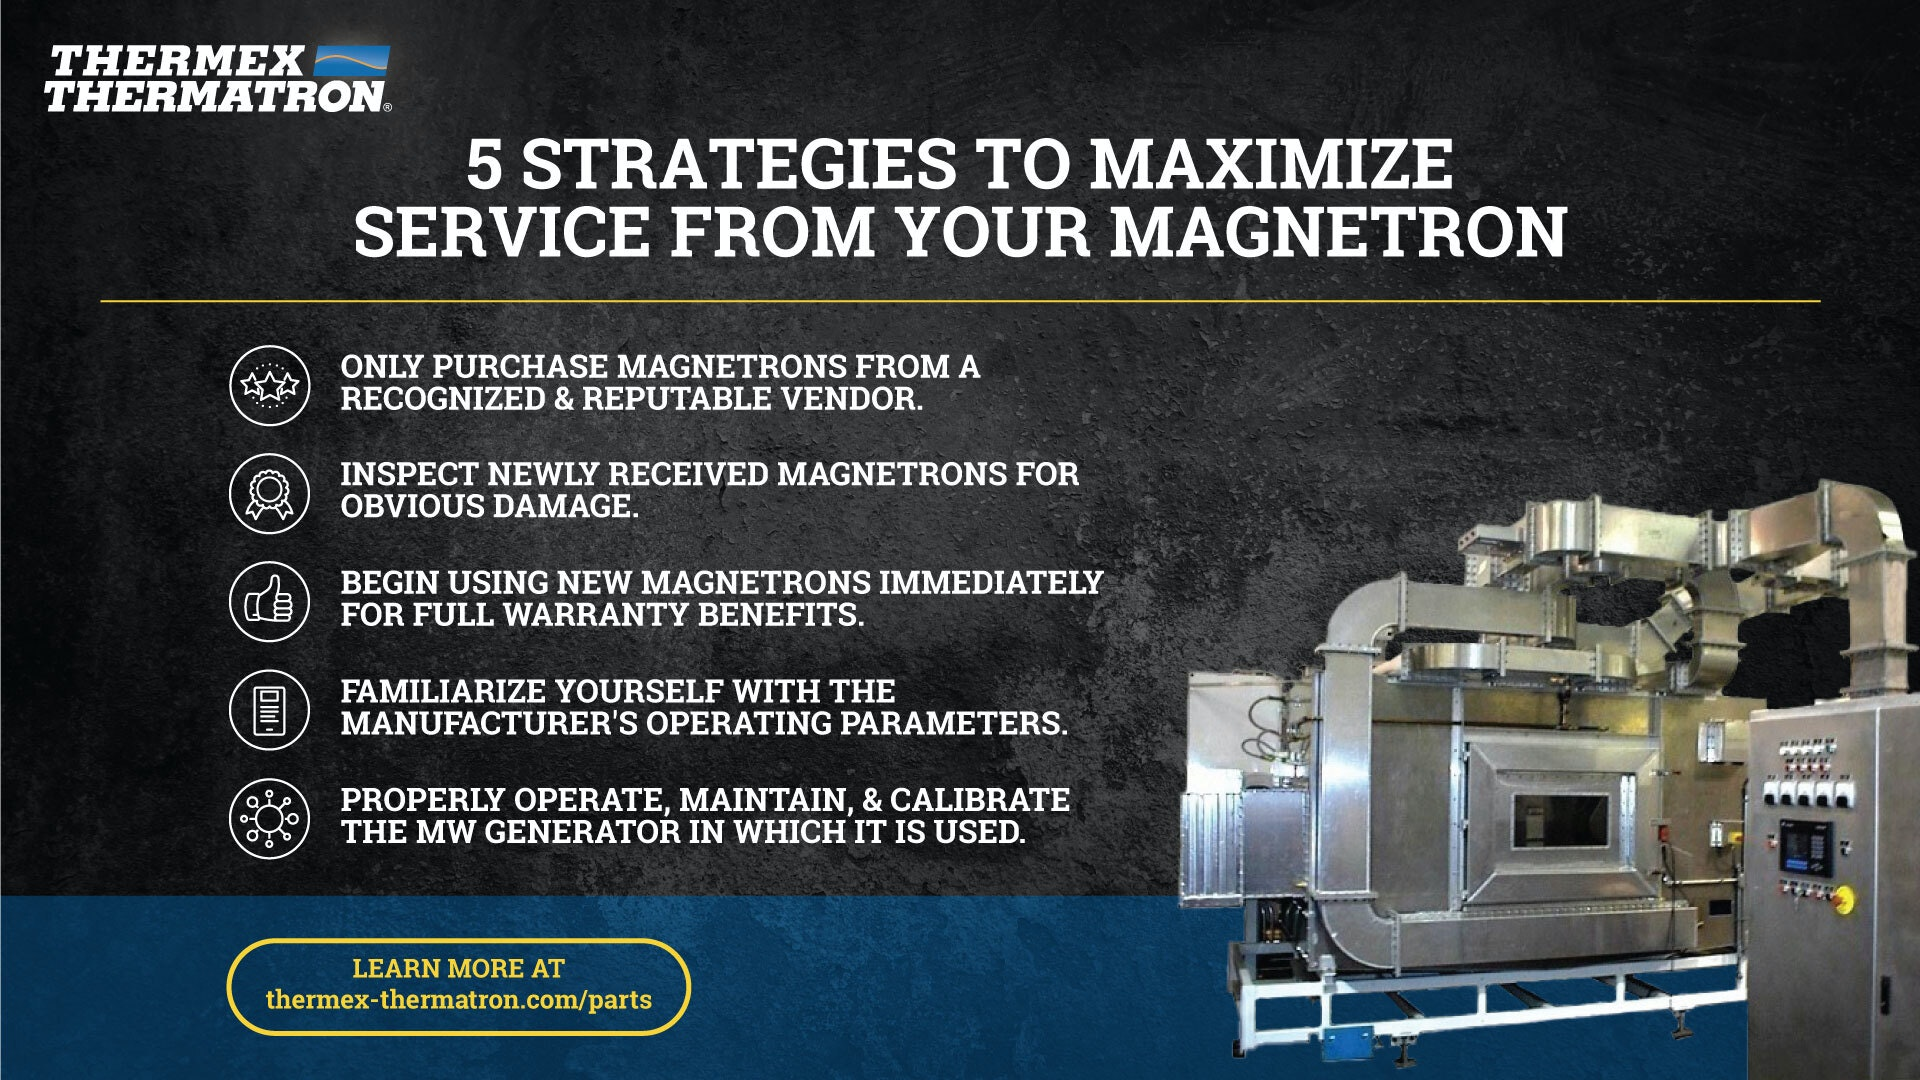 820 2020 5 Strategies To Maximize Service From Your Magnetron